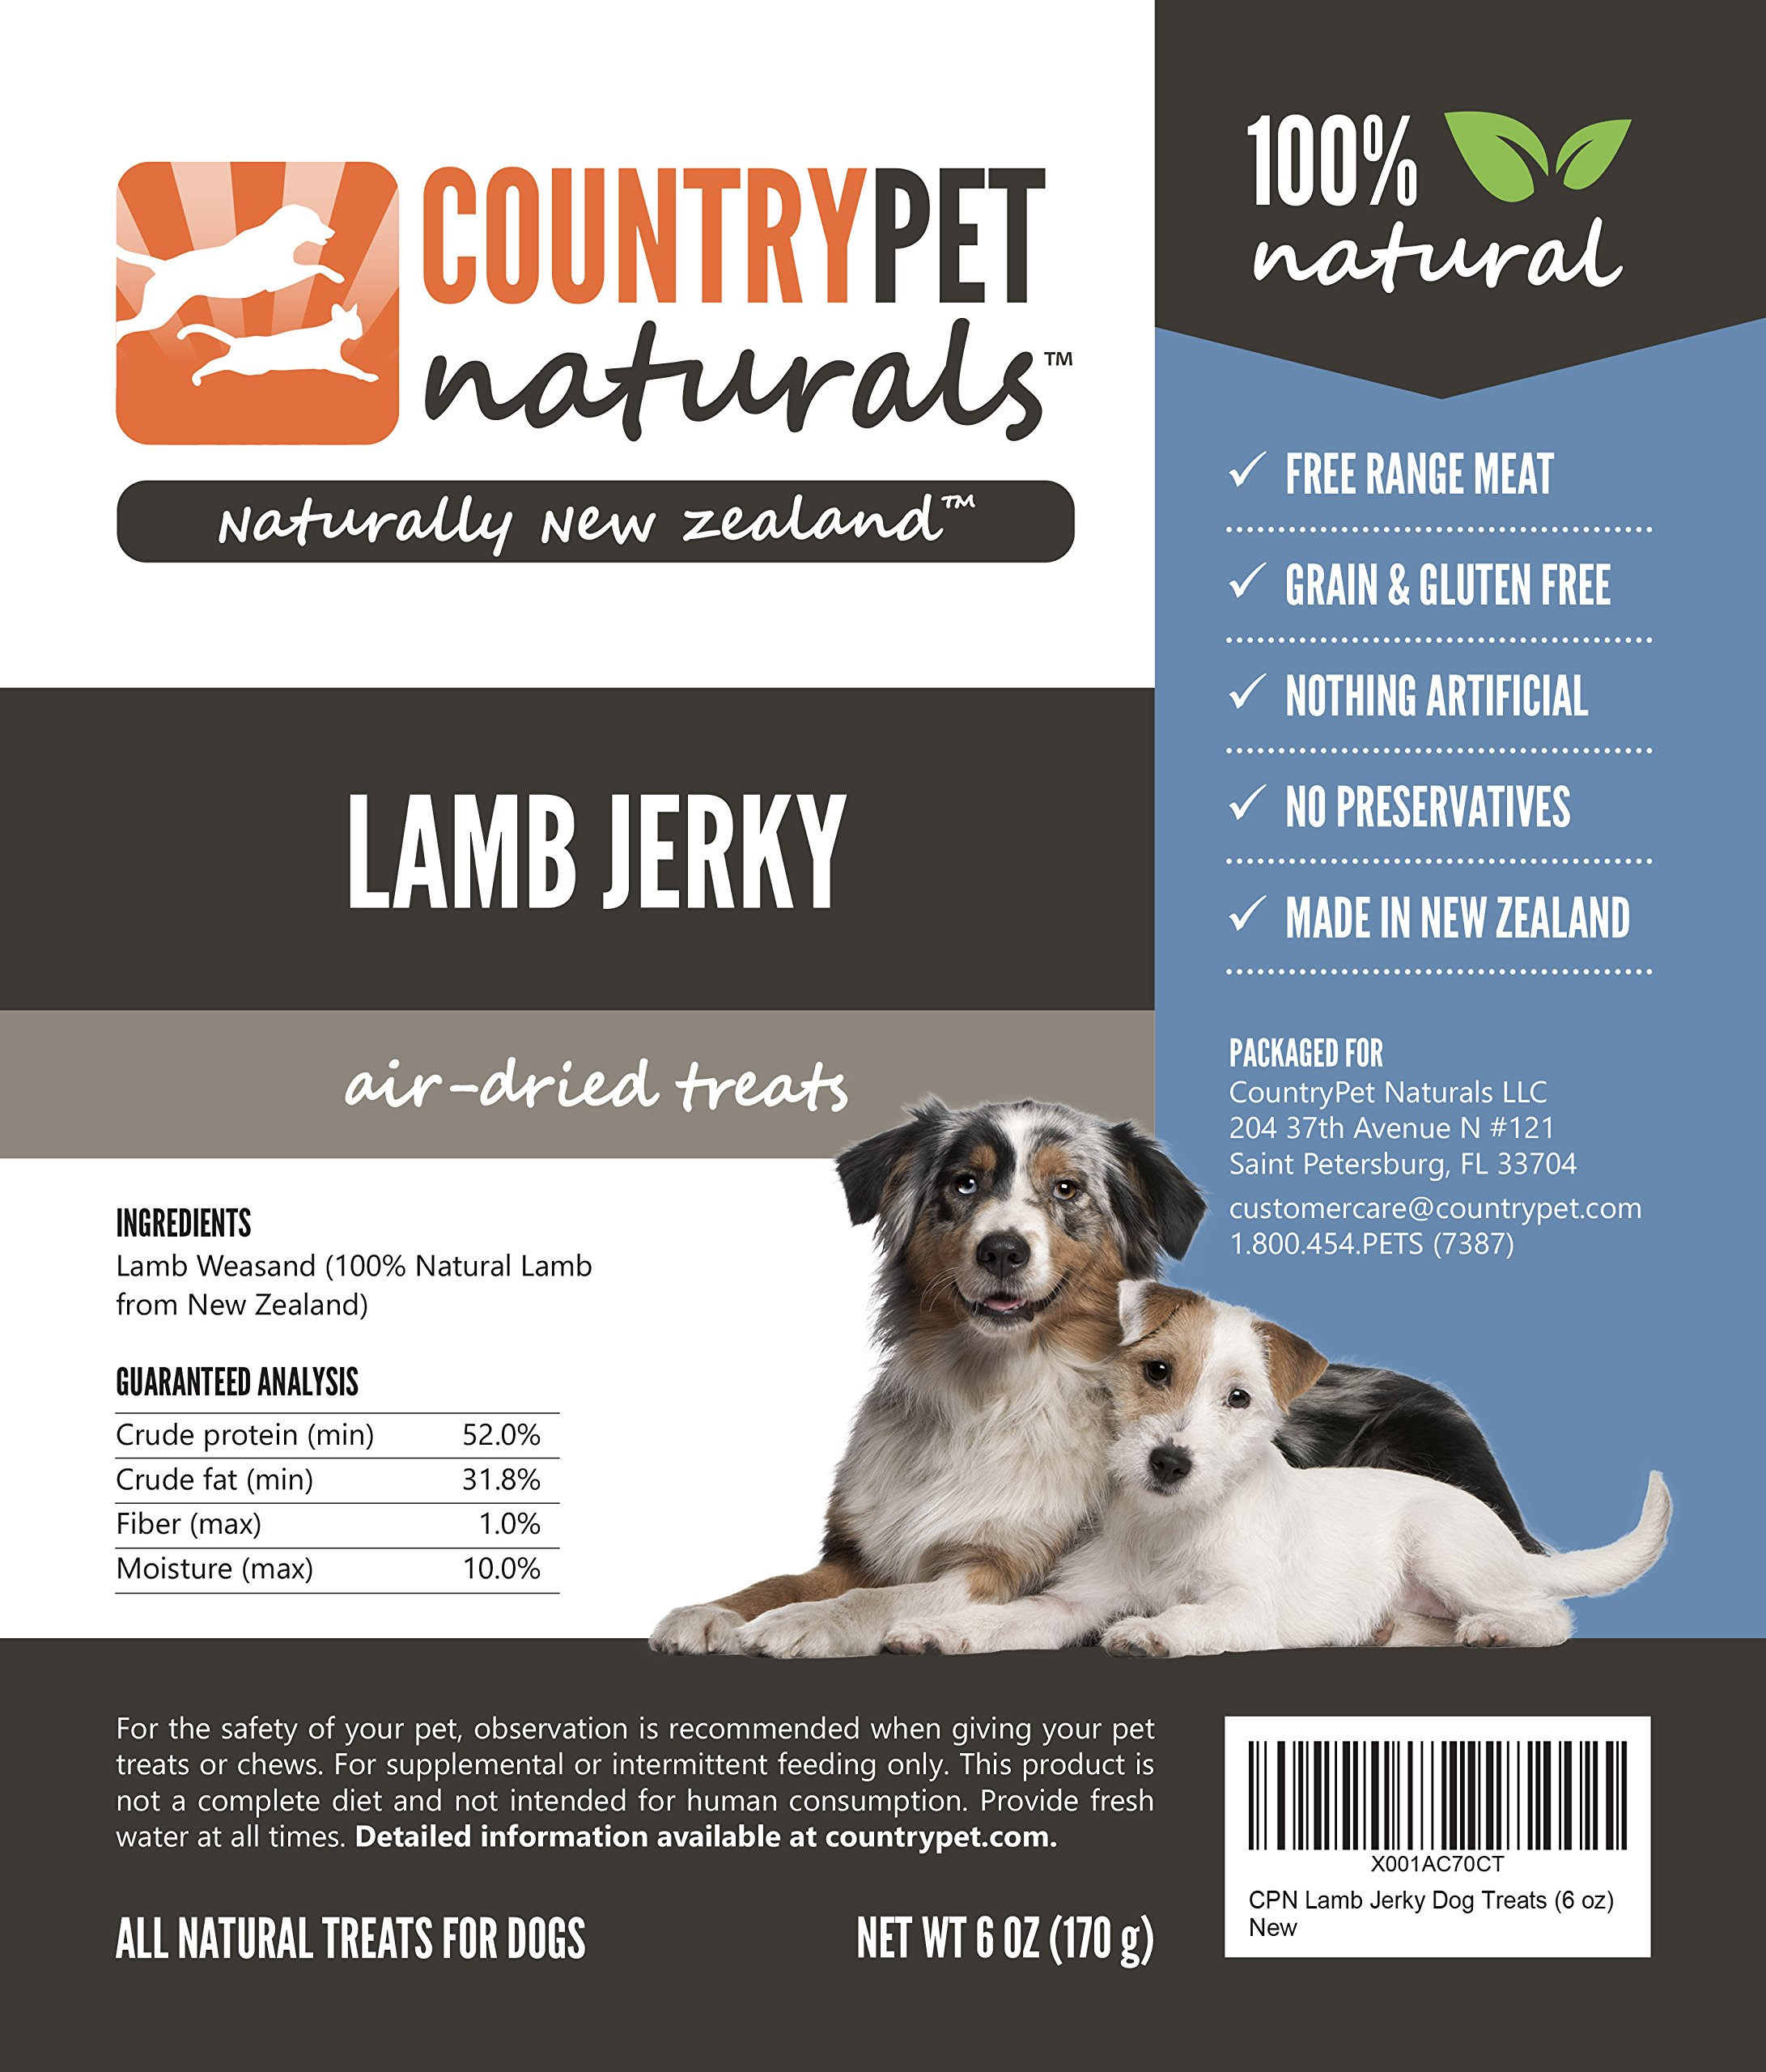 Lamb Jerky Treats for Dogs by CountryPet Naturals (6 Ounces) - Air Dried, Healthy Snack and Training Reward - 100% Natural, Grain Free, Gluten Free, Single Ingredient - Made in New Zealand by CountryPet Naturals (Image #4)